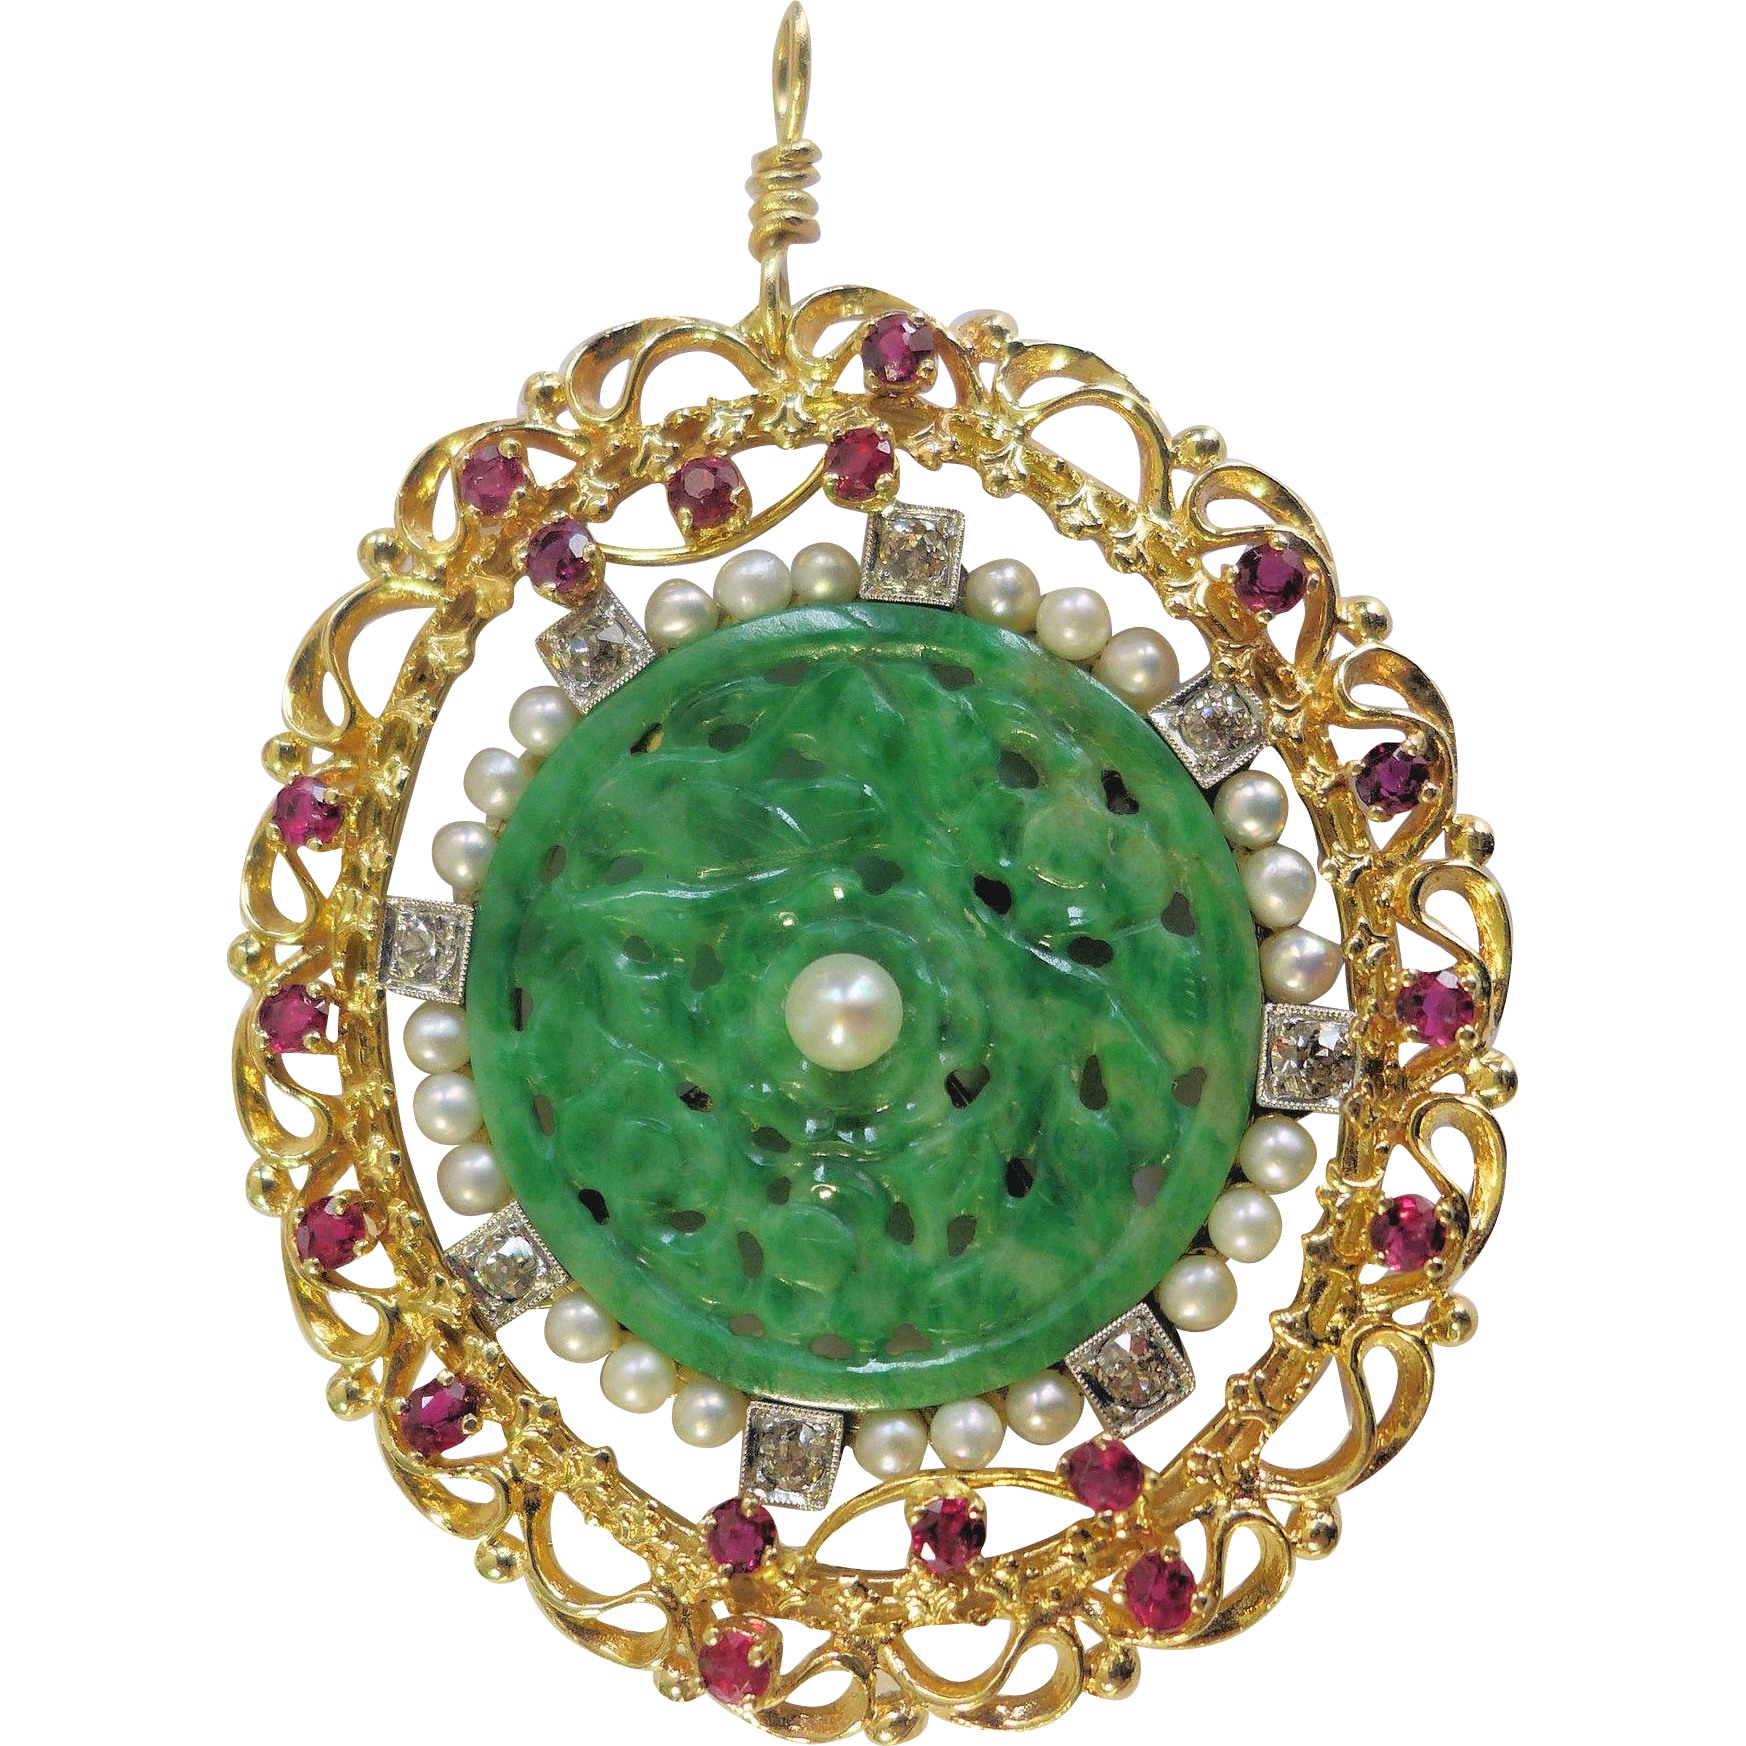 Stunning Large Antique Art Deco Chinese 14K Yellow Gold Carved Rich Apple Green Jadeite Jade Diamond Ruby Pearl Pendant Weighs 20.5 Grams